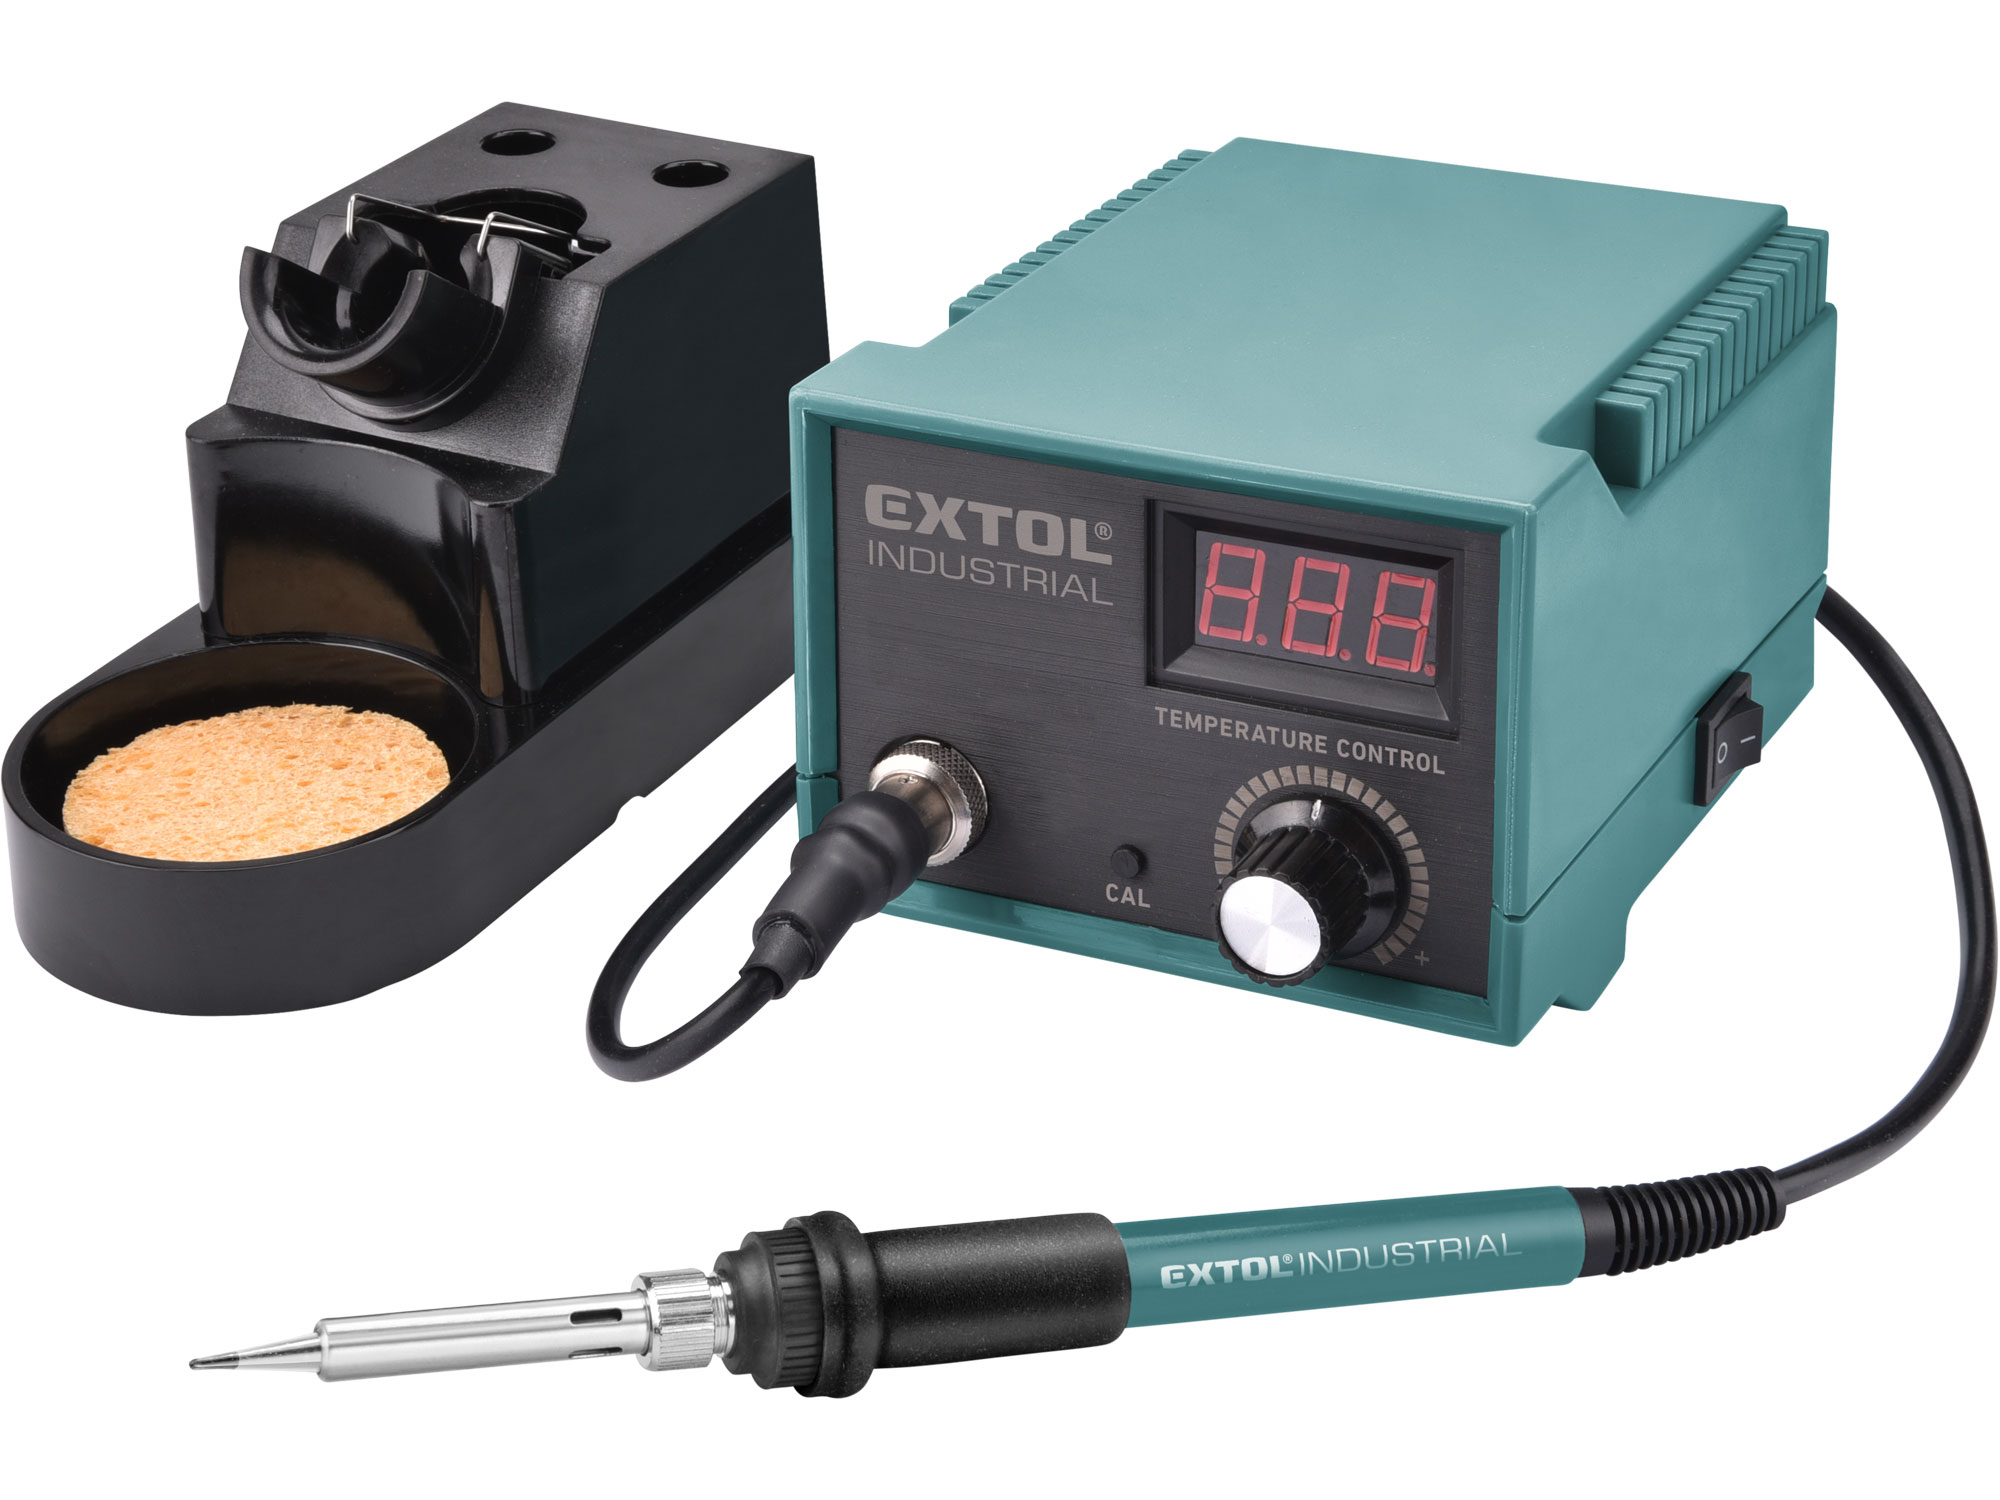 Soldering Station, LCD & Electronic Temperature Control & Calibration